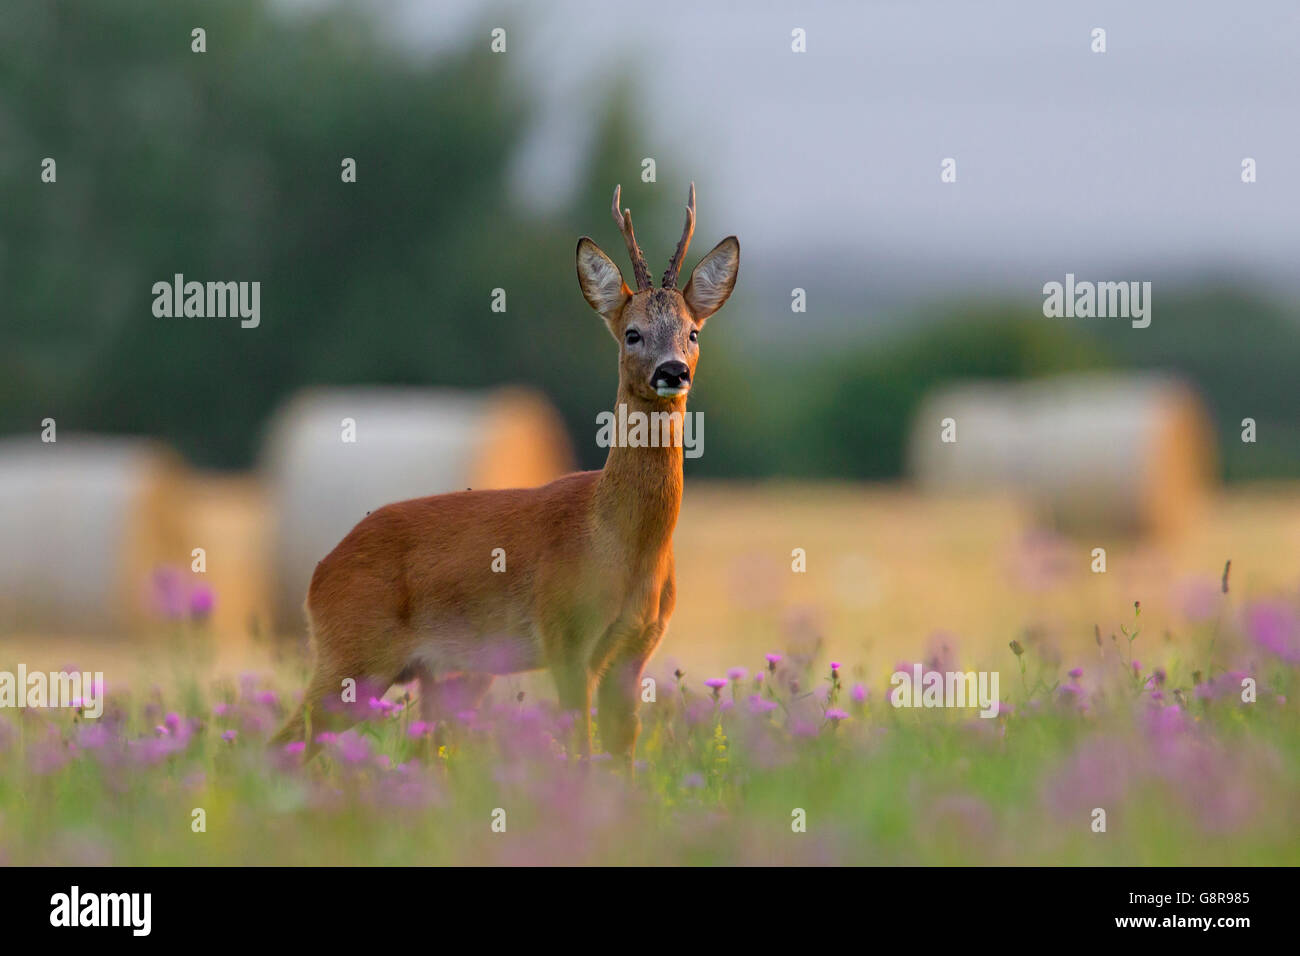 European roe deer (Capreolus capreolus) buck foraging on farmland in summer - Stock Image